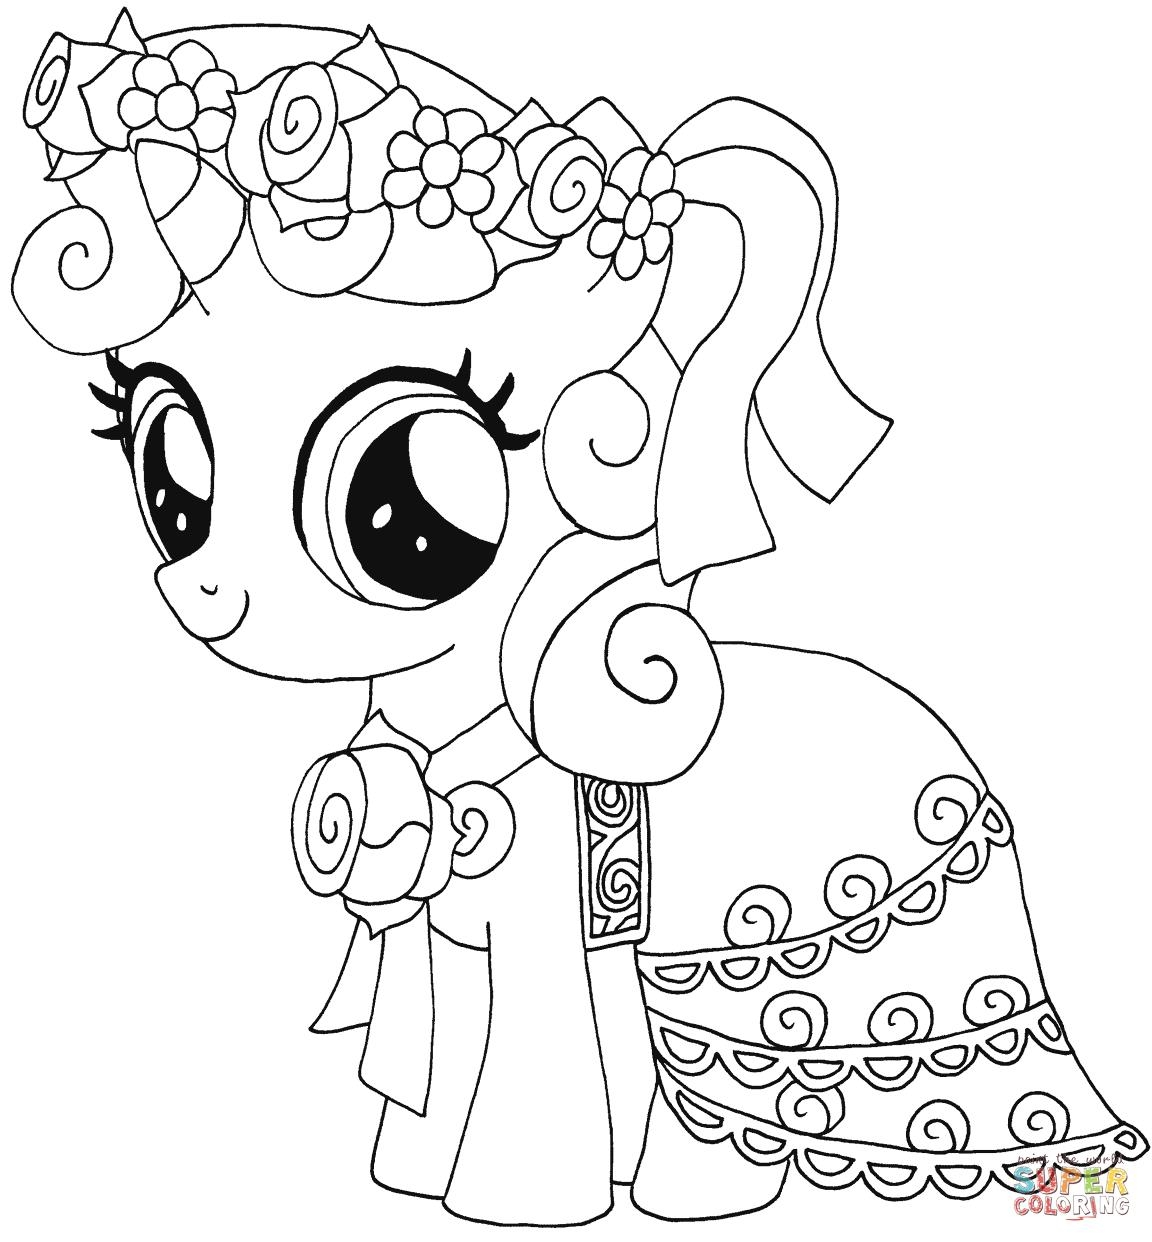 My Little Pony Printable Coloring Page